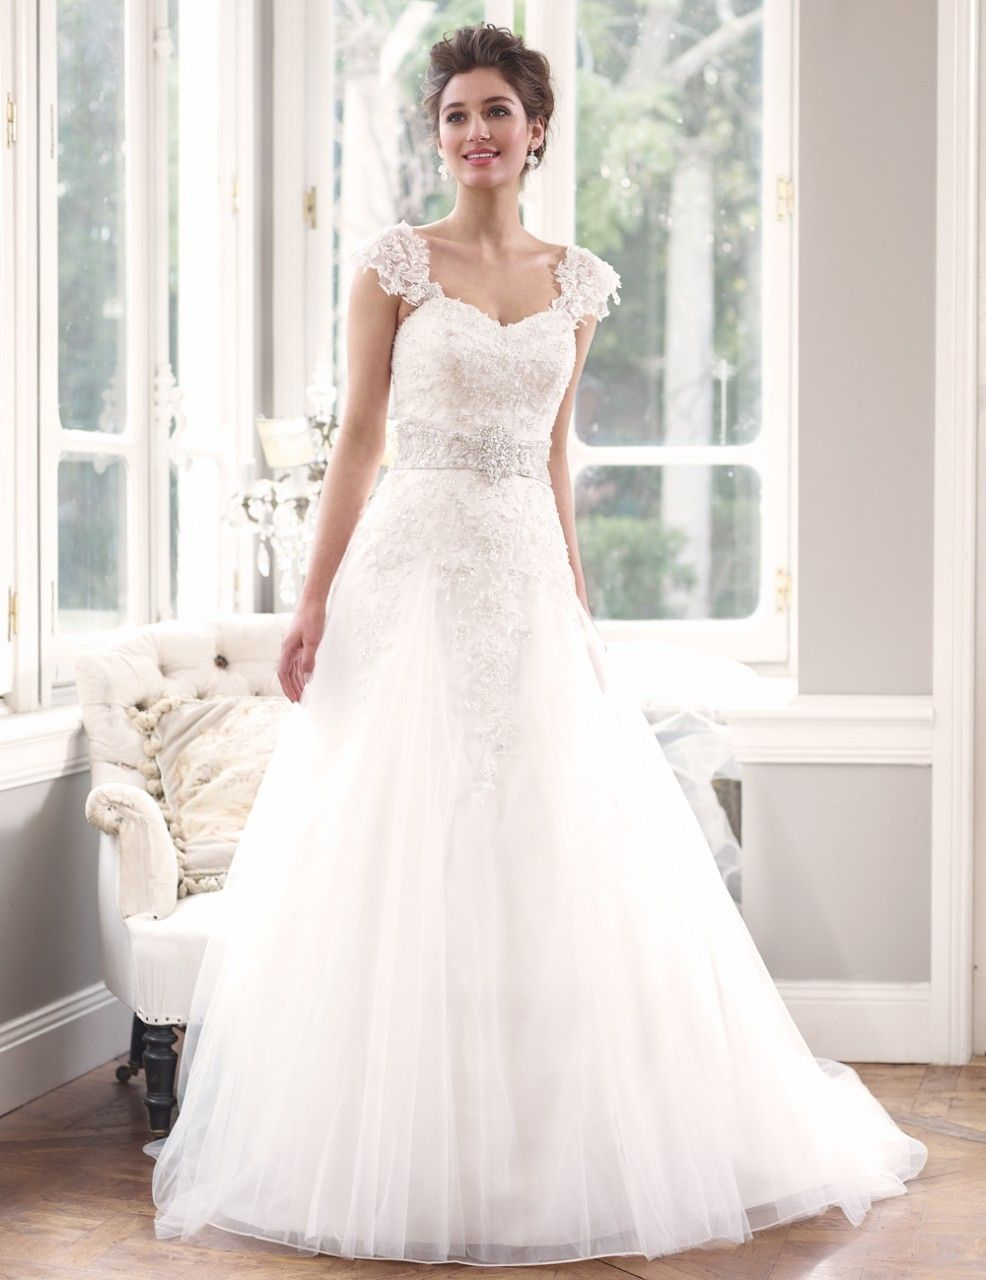 Lace cap sleeve a line wedding dress  ML Delicate lace Wedding Dress with Detachable cap sleeves  Luv